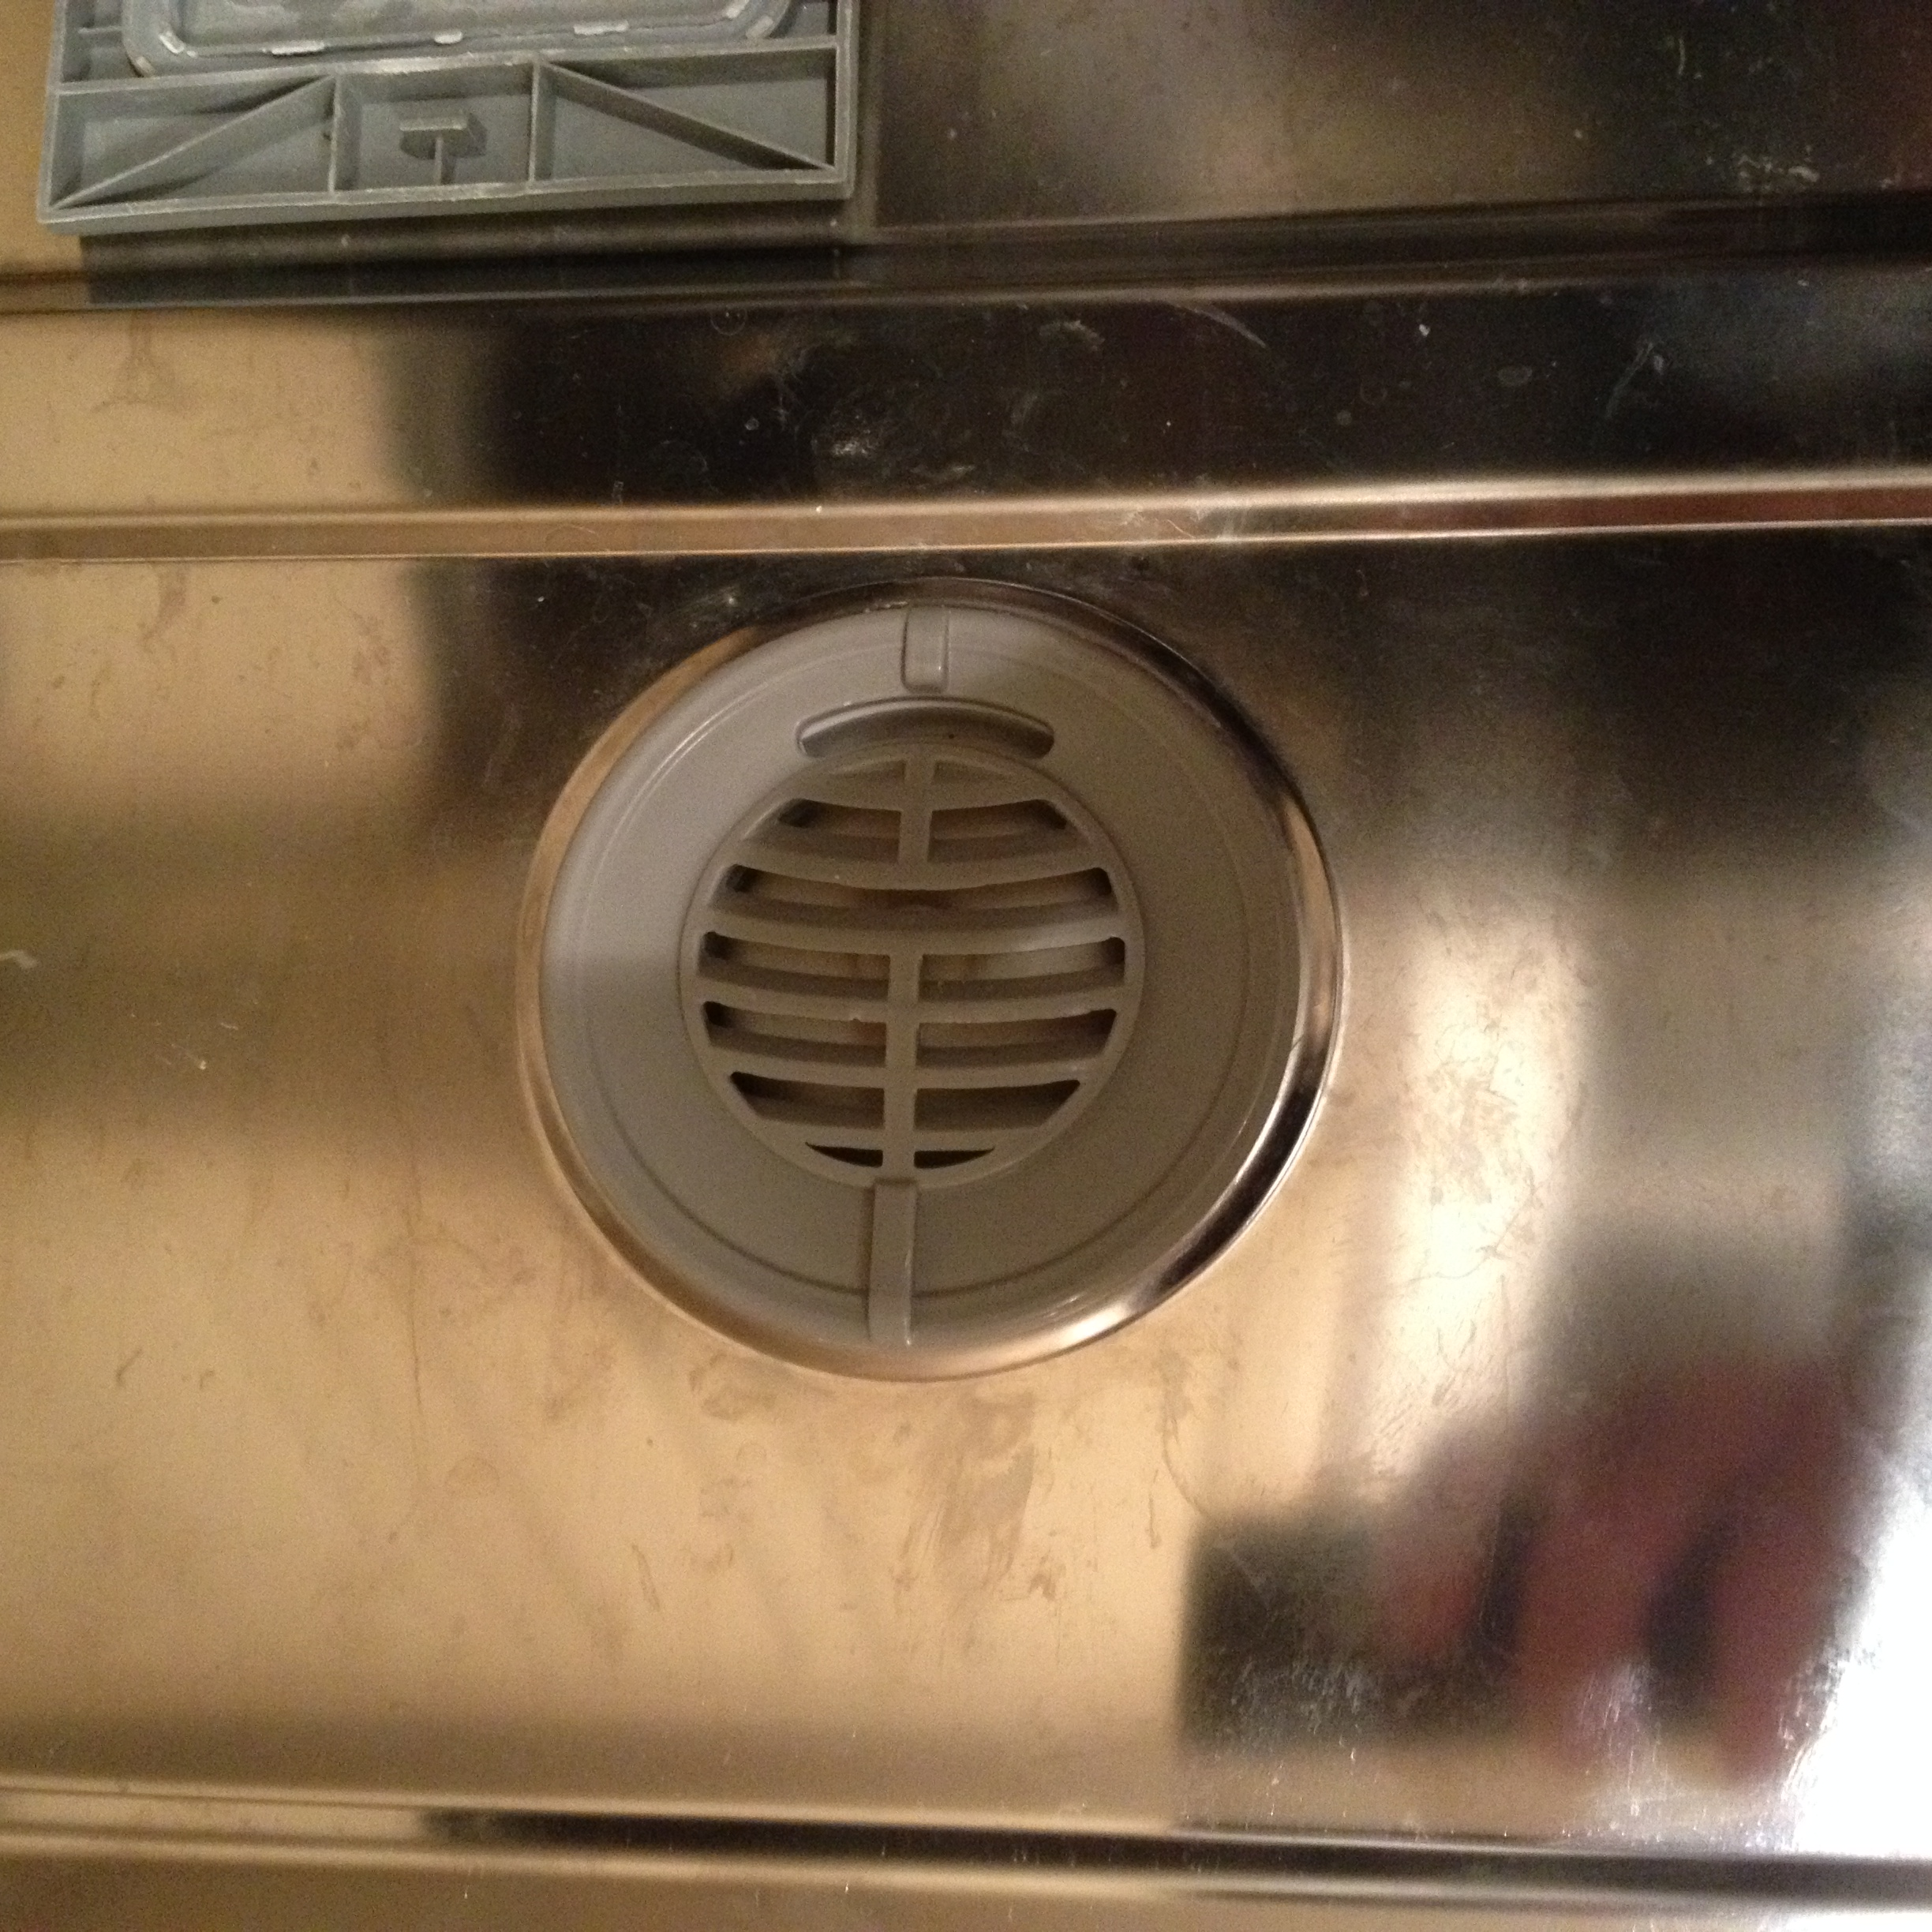 Help! My LG Dishwasher LDF6920ST Is Leaking Water | A Lesson